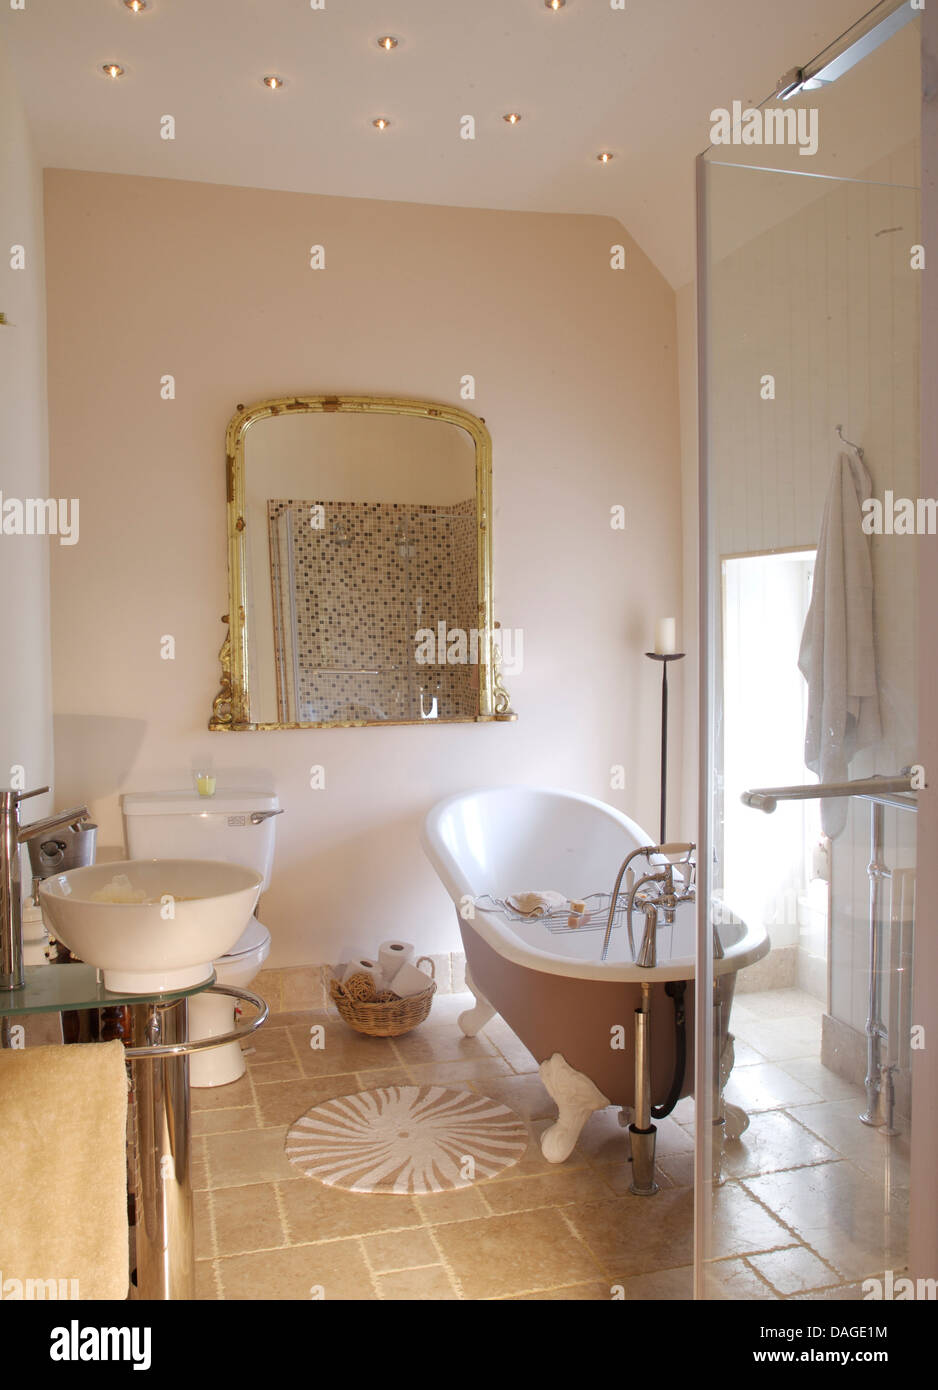 Roll top bath and large glass shower cabinet in modern bathroom with roll top bath and large glass shower cabinet in modern bathroom with large antique mirror and stone tiled floor dailygadgetfo Gallery